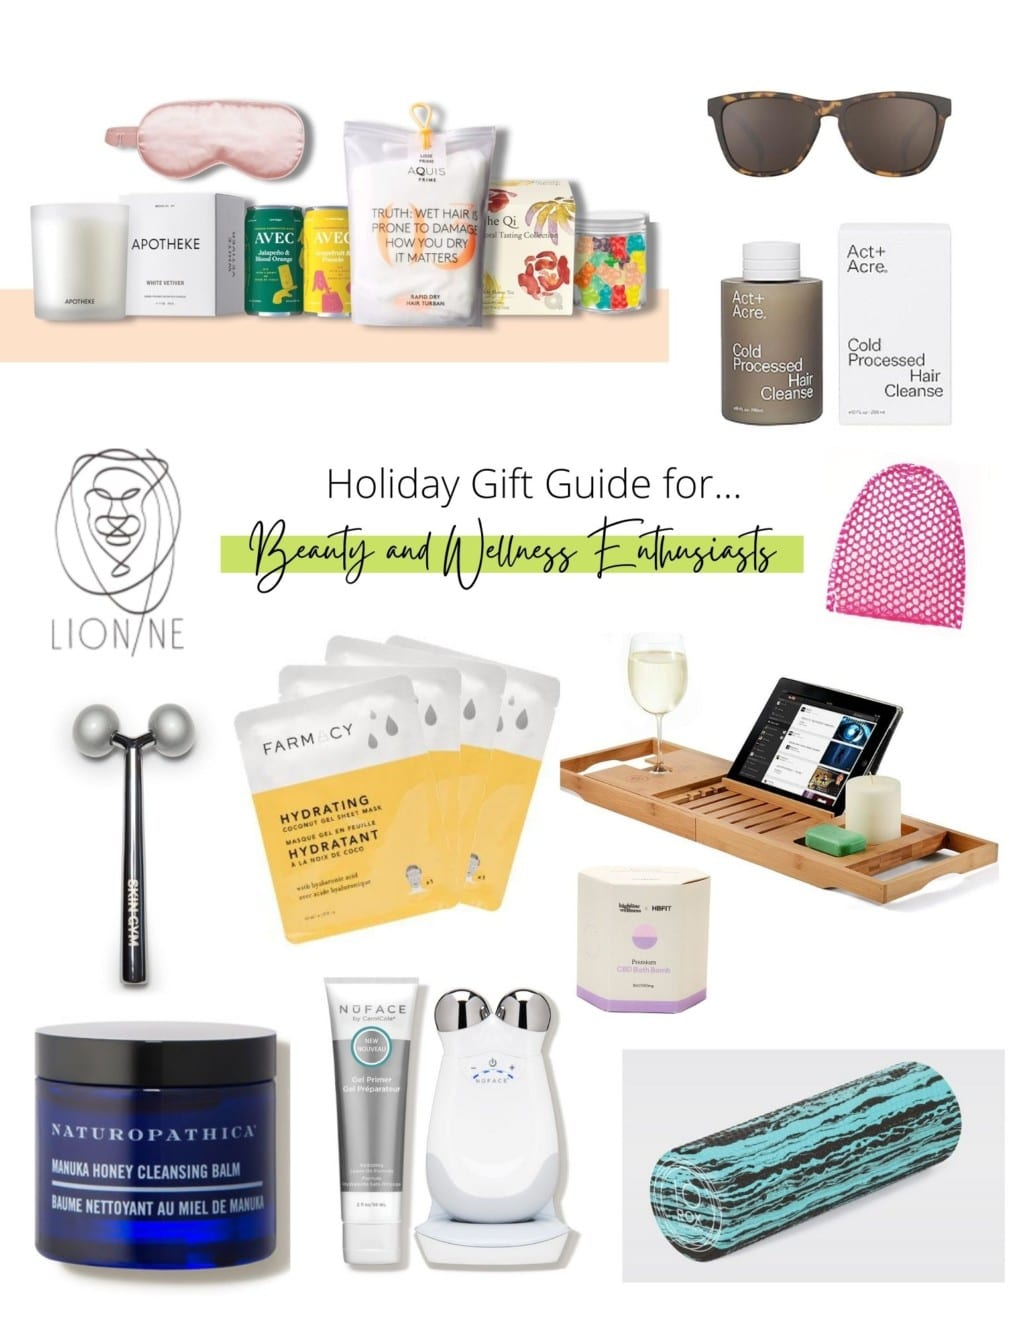 Collage of holiday gift ideas for beauty and wellness lovers.